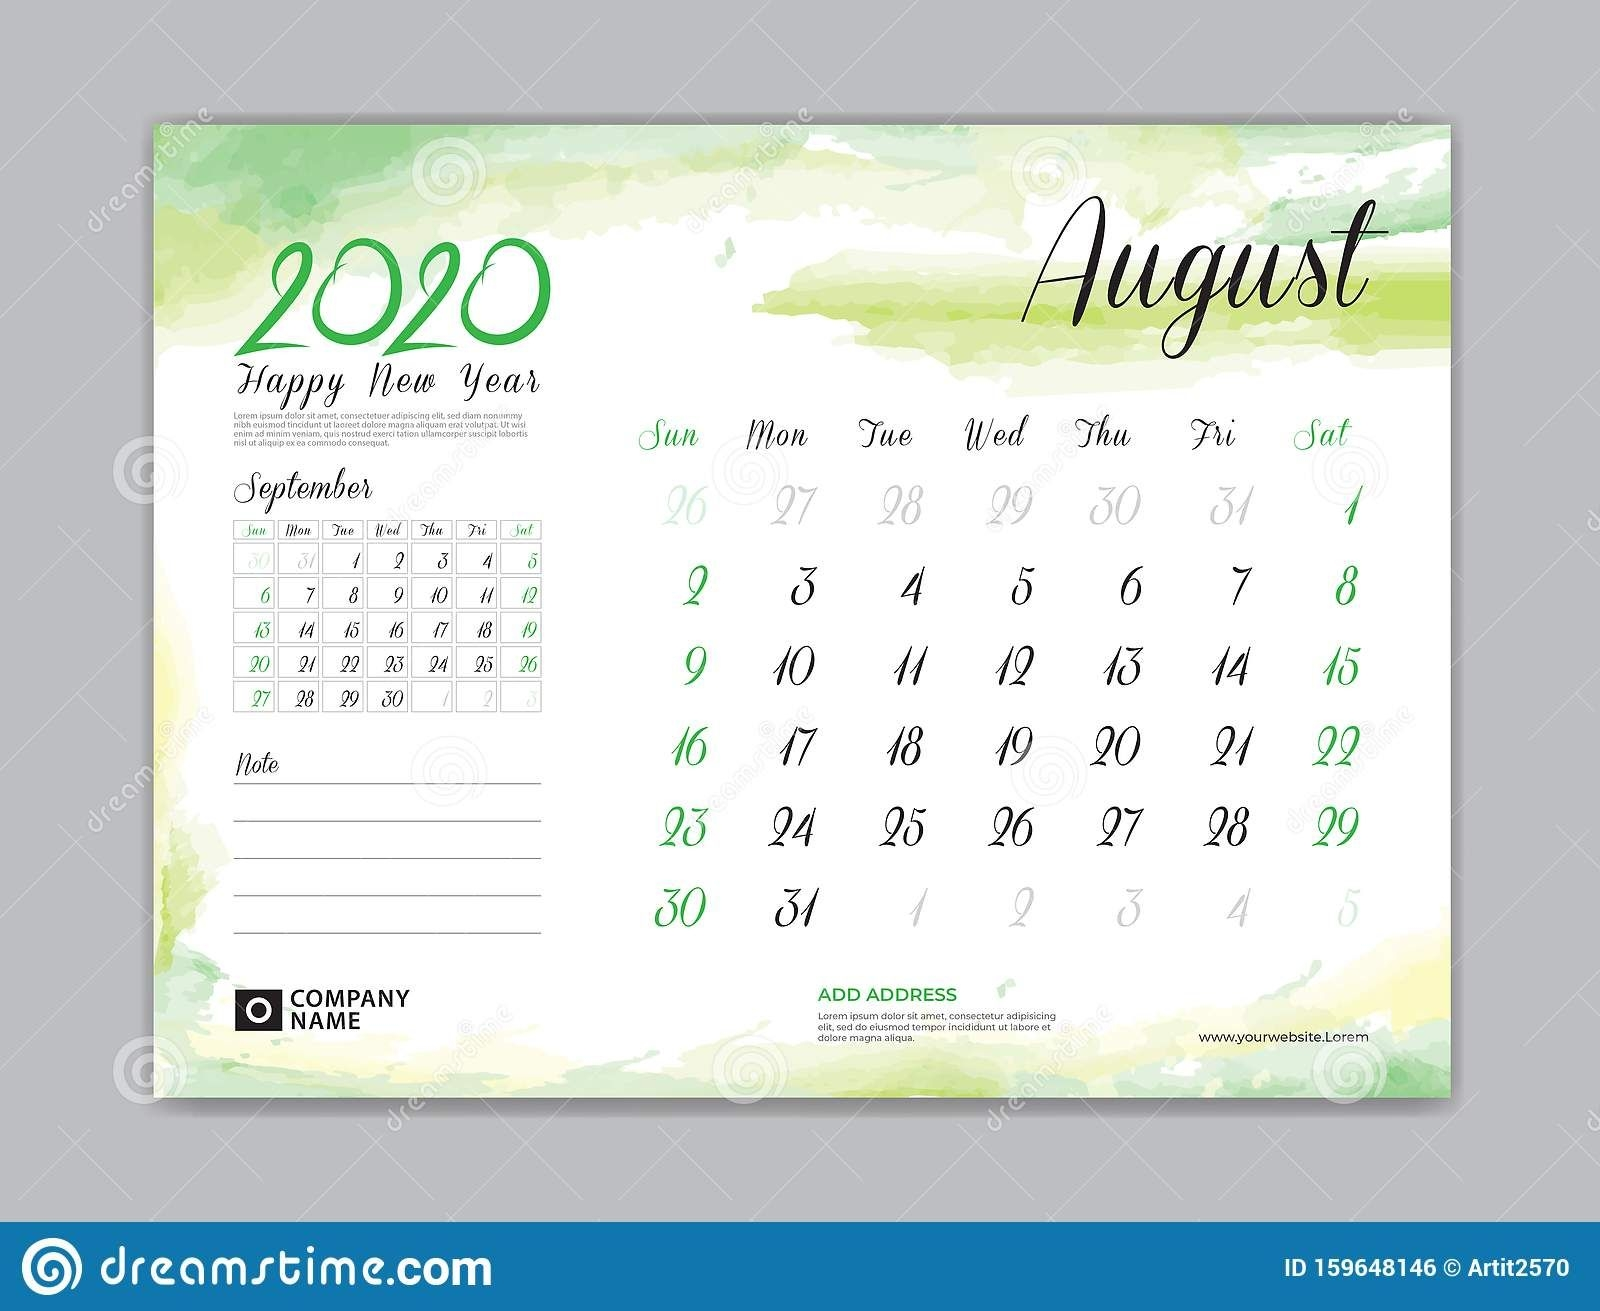 Calendar For 2020 Year Template, August Month, Desk Calendar